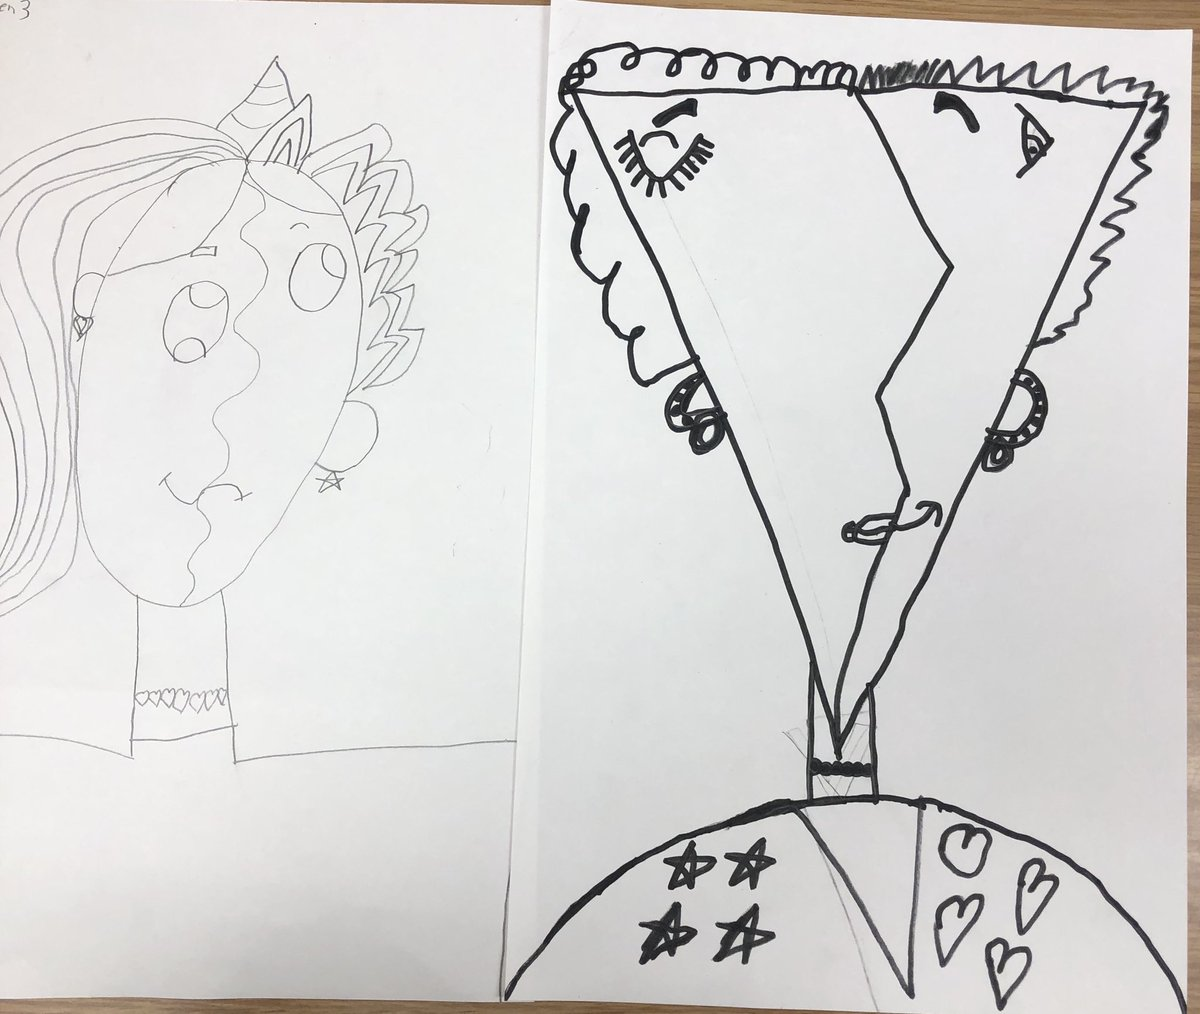 My 1st and 2nd graders ar working on and learning about Picasso. Here is a start to their rendition #ocpsarts #ocps #artedu #arteducation #iteachart #sadlerartspic.twitter.com/23nbn3aguB